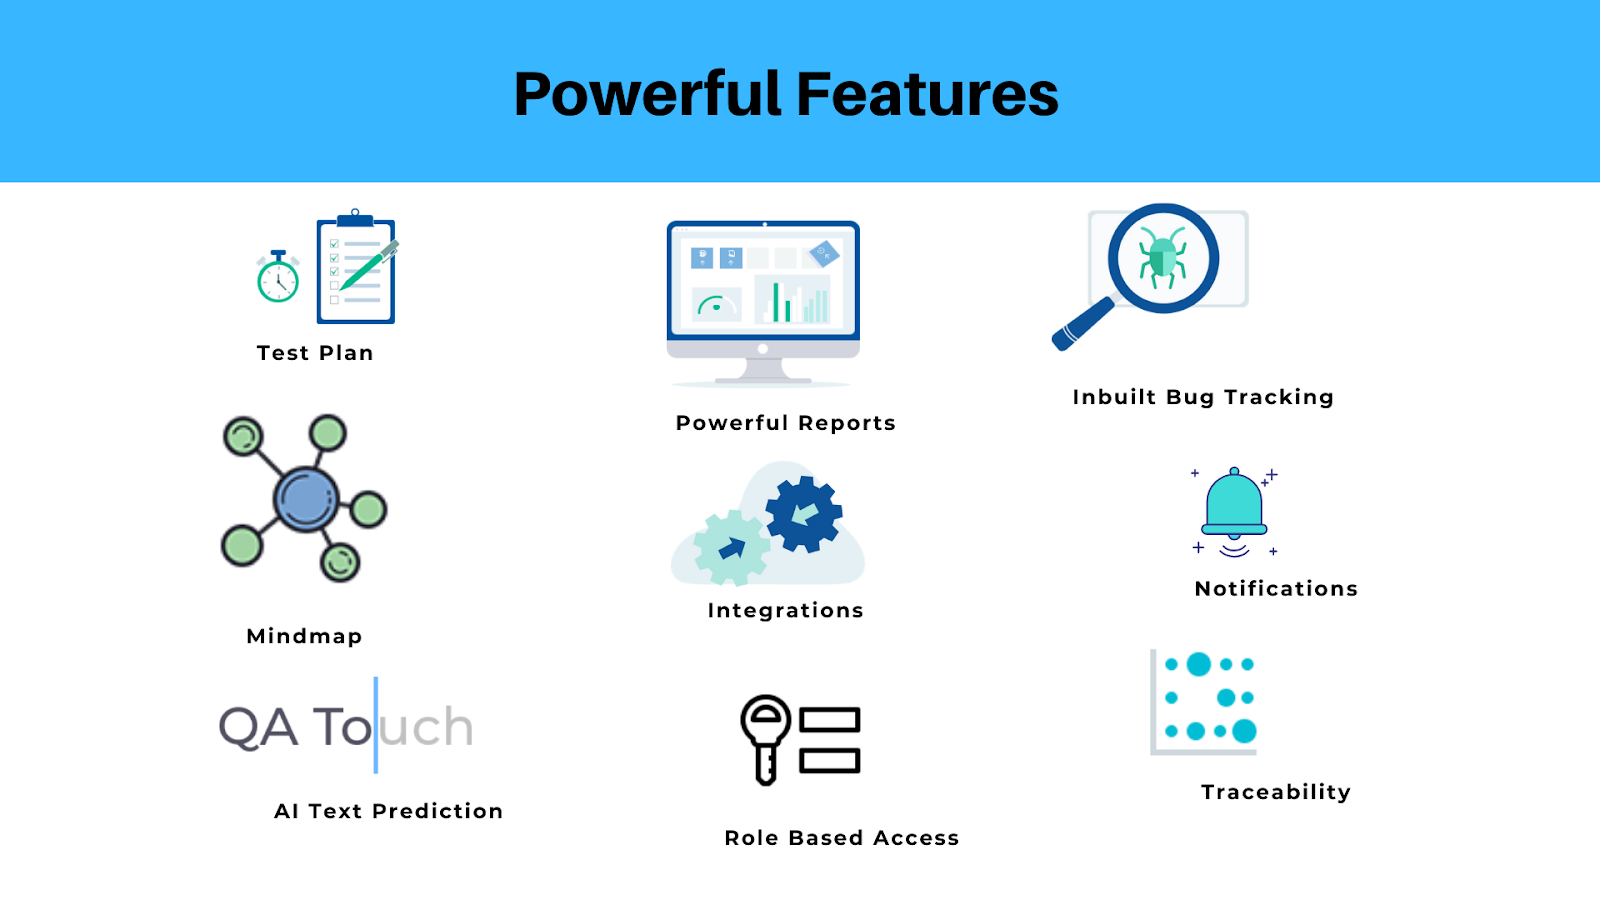 QA Touch Powerful Features